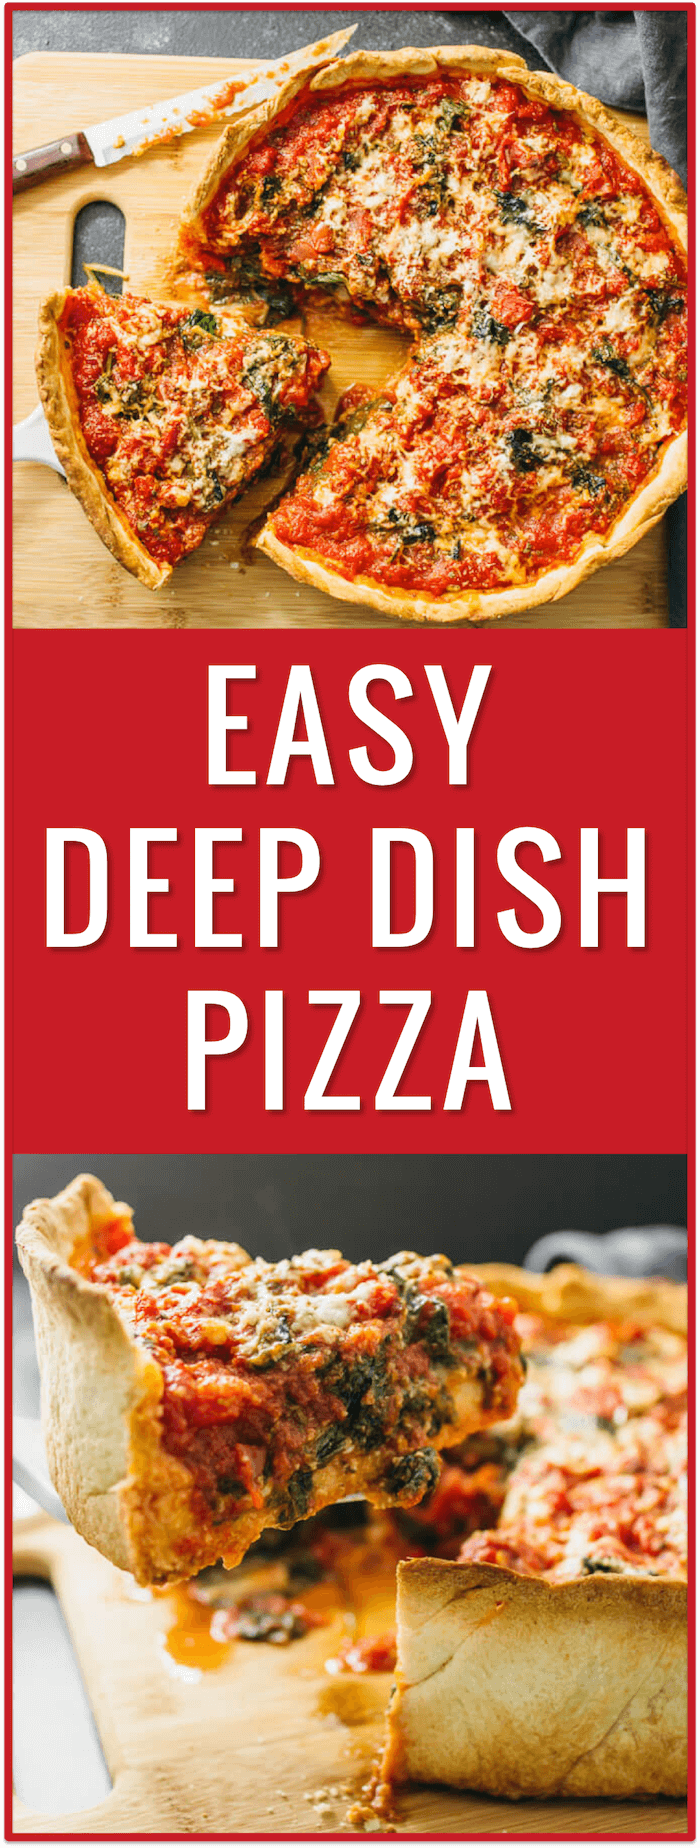 Chicago deep dish pizza with spinach - Don't live in Chicago but craving deep dish pizza? No problem! In this recipe, I'll show you how to make homemade Chicago deep dish pizza with spinach from scratch! The dough is easy to prepare and the filling can be of your own choosing. - savorytooth.com